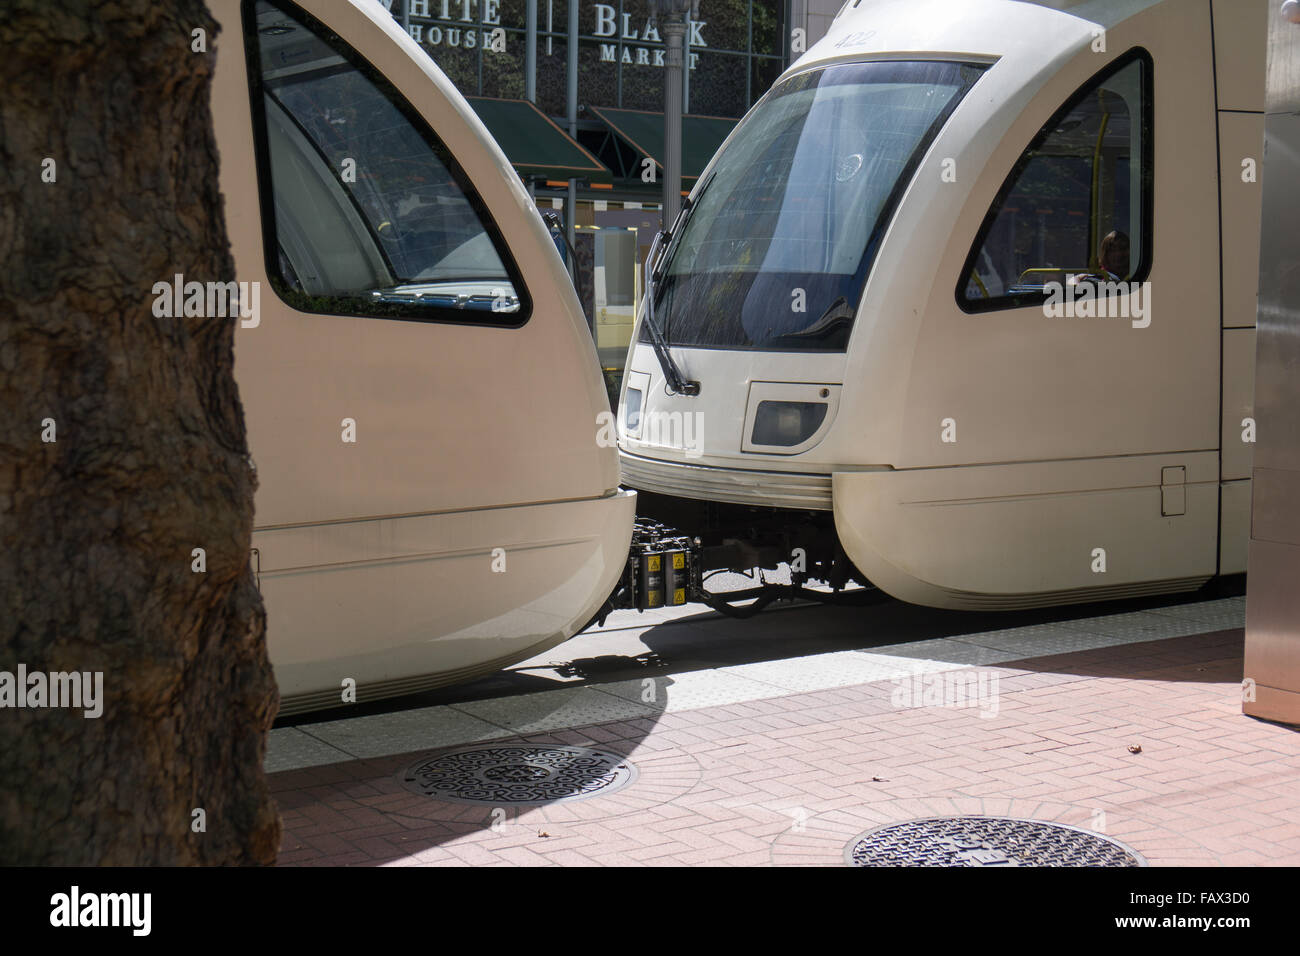 streetcars in Portland OR - Stock Image